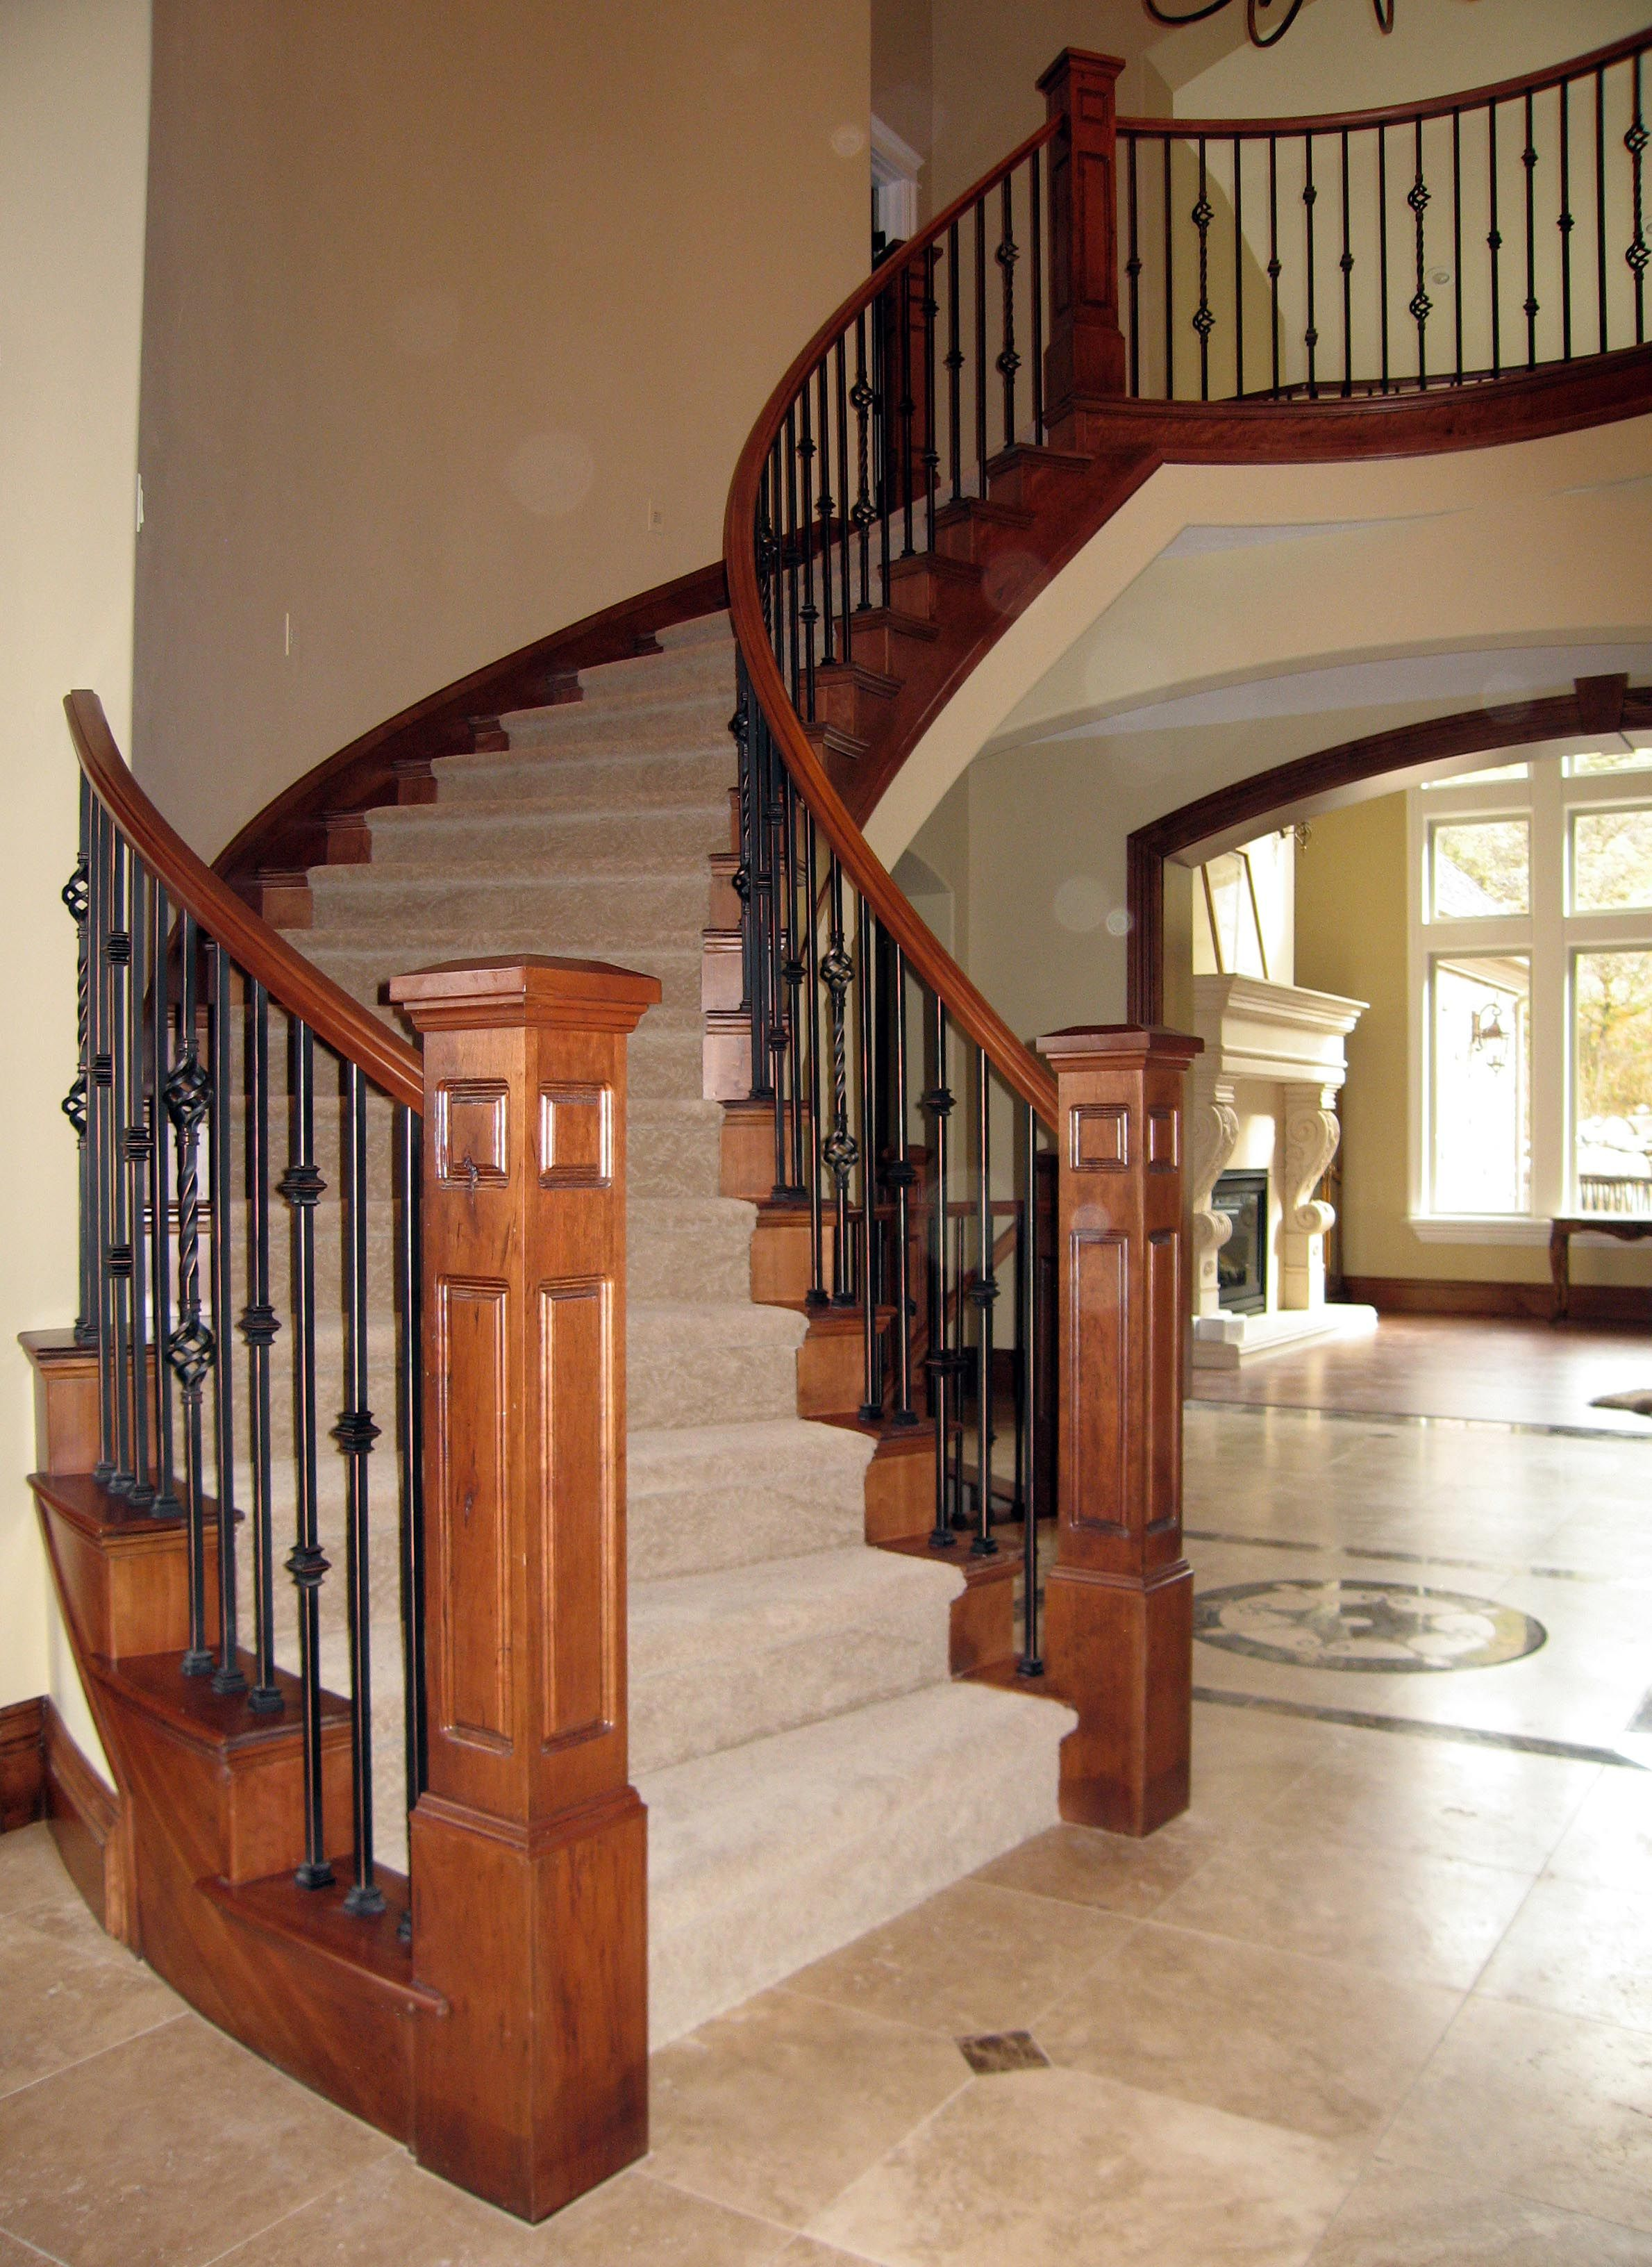 Best Reusing My Old Stair Parts When Remodeling My Banister With Images Wooden Staircase Railing 400 x 300